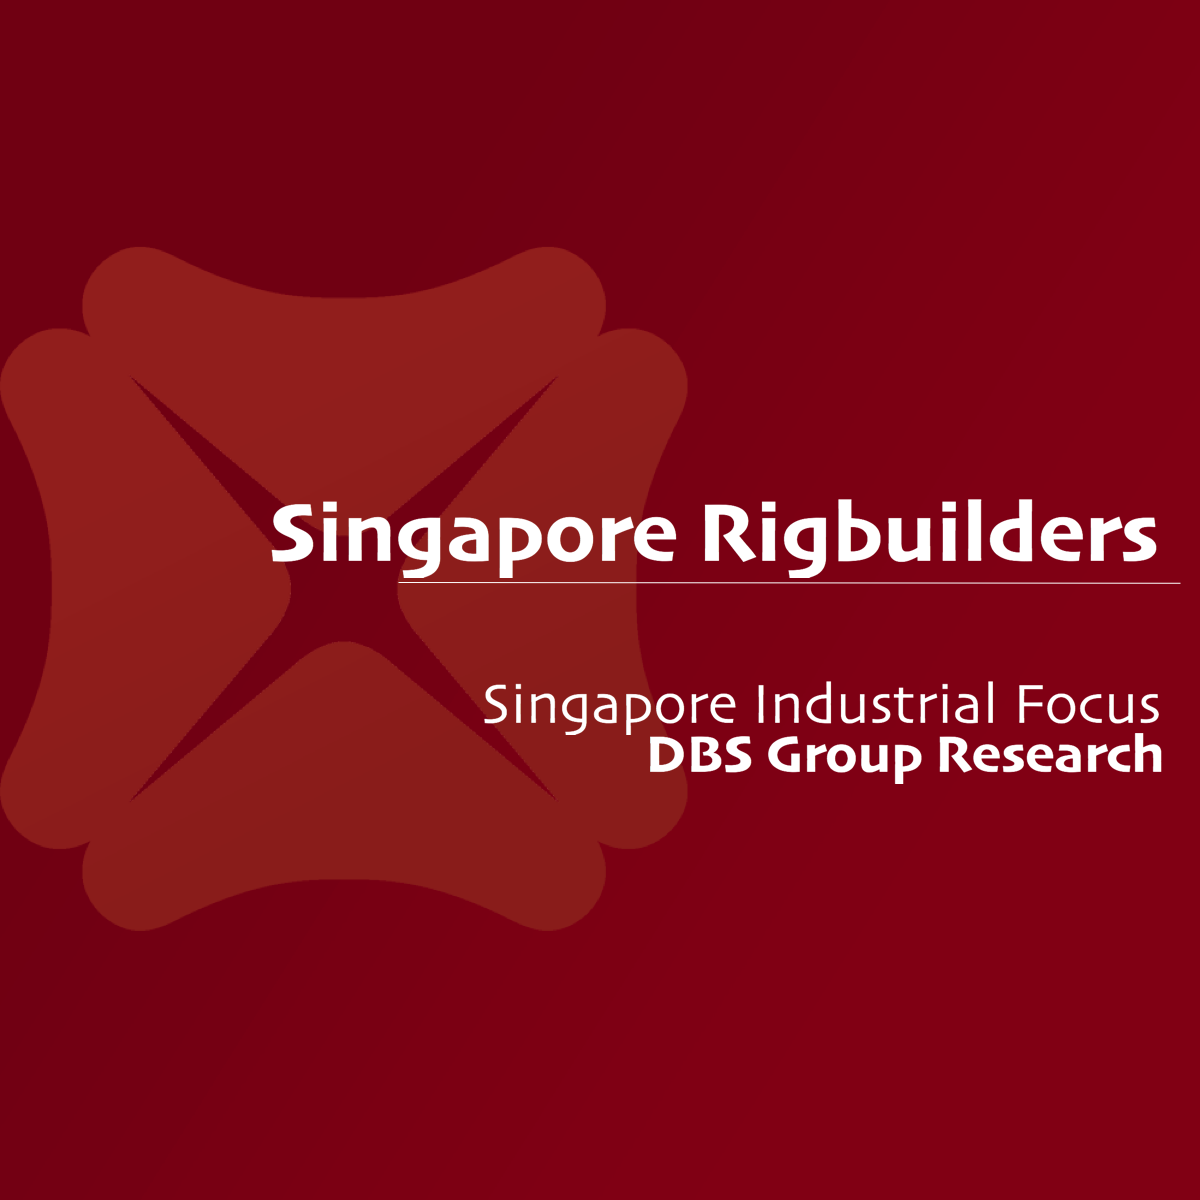 Singapore Rigbuilders - DBS Vickers 2017-09-20: Rolling Rig-sale Bandwagon